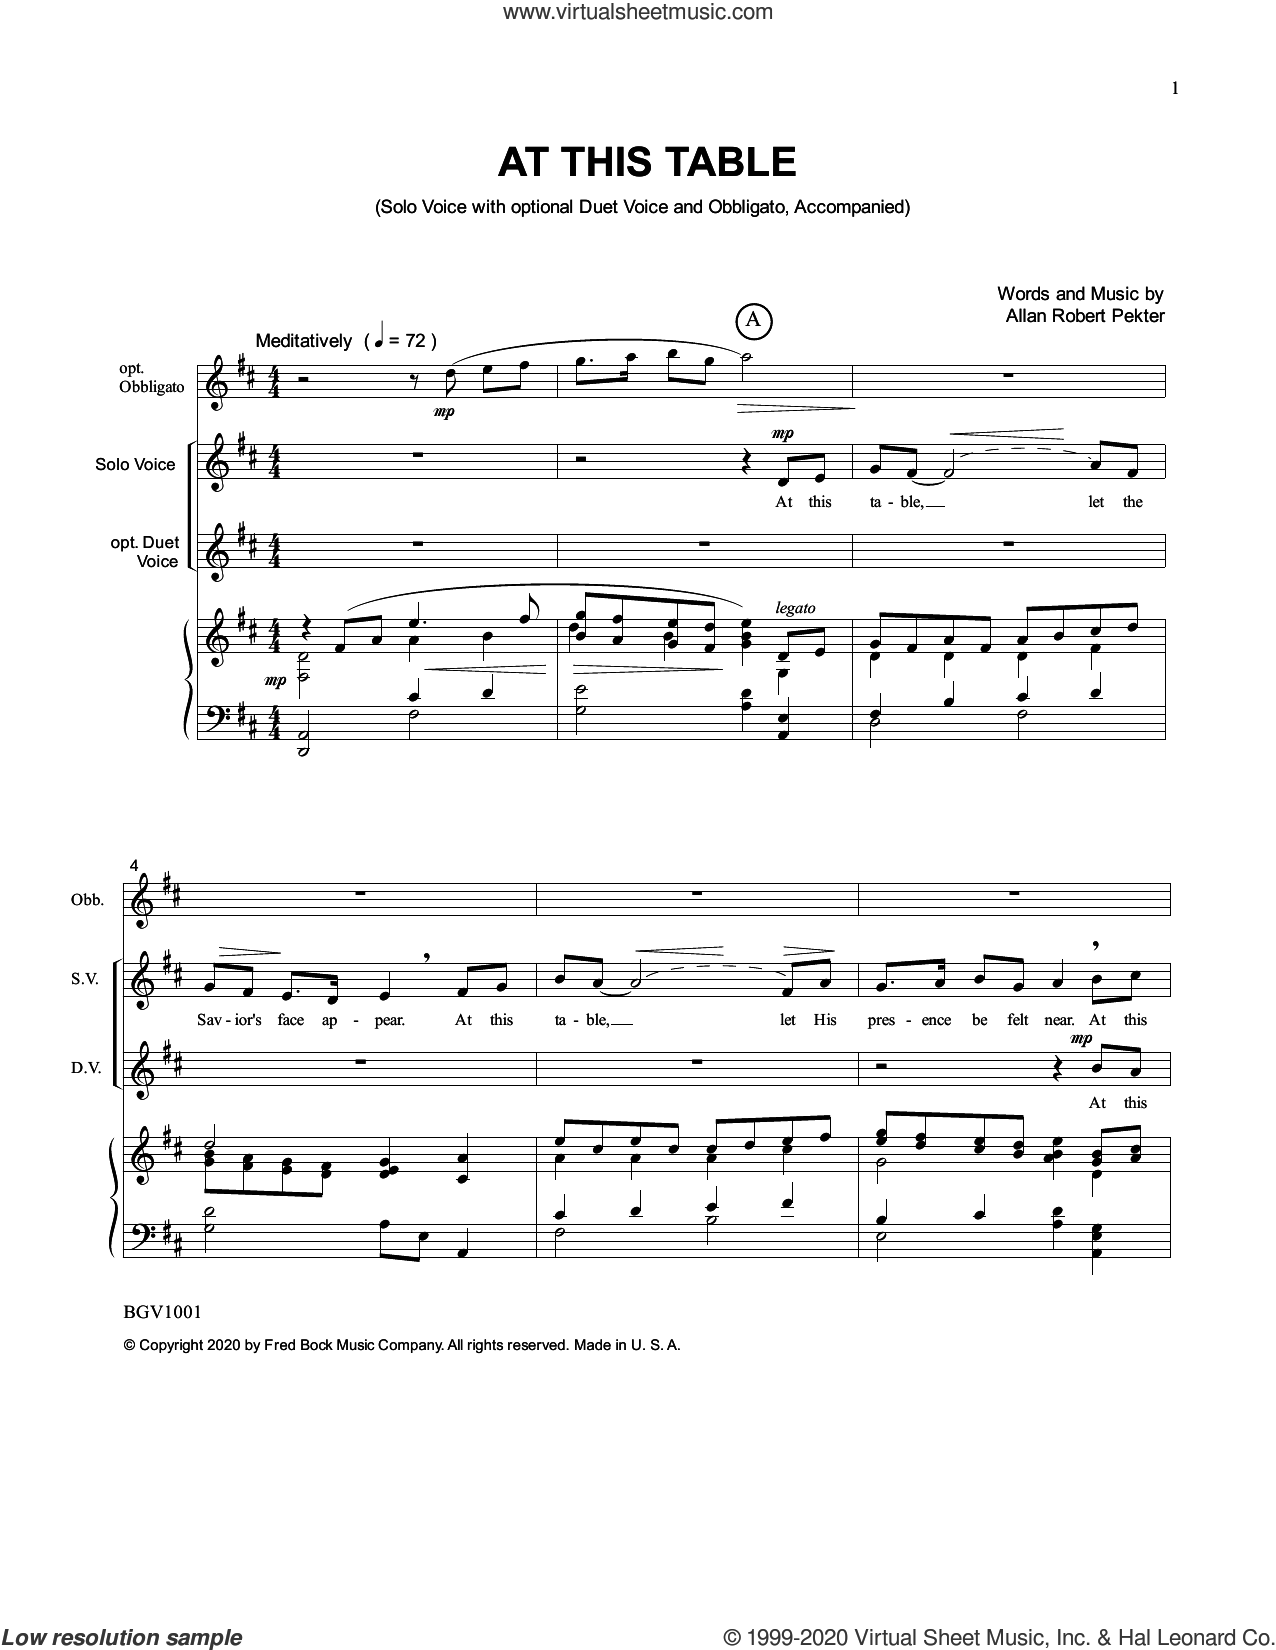 At This Table sheet music for voice and piano by Allan Robert Petker, intermediate skill level